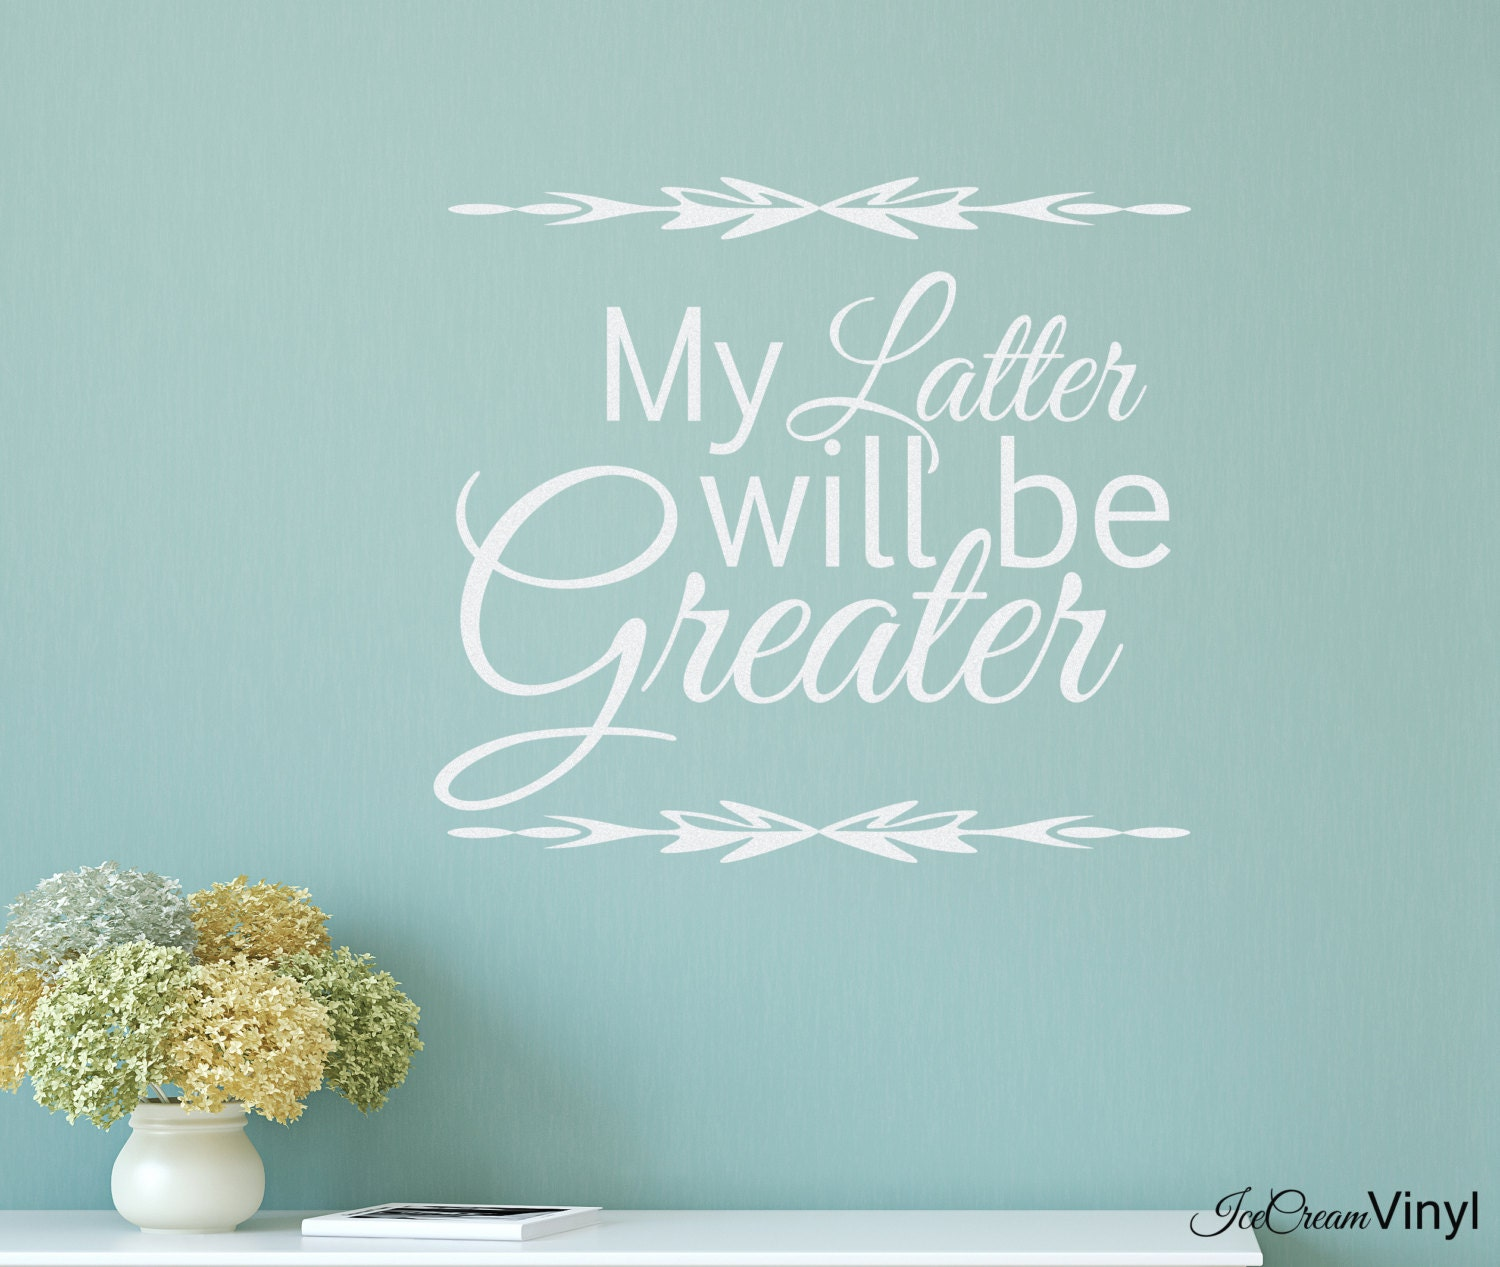 Scripture Wall Decal My Latter Will Be Greater Job 8:7 Kitchen